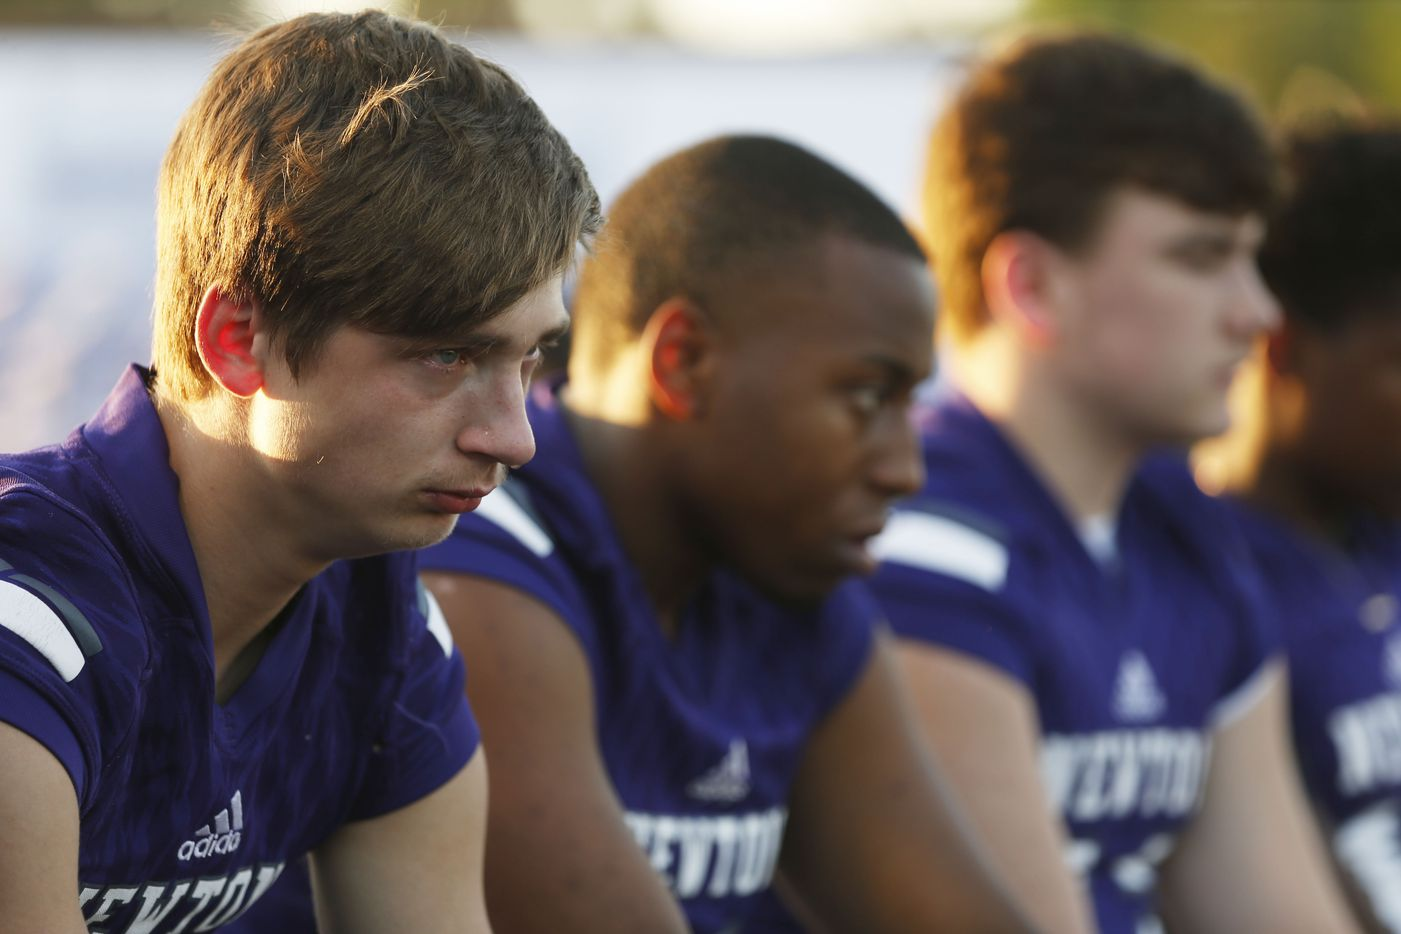 """Newton's Nate Williams cries as a song is sung during the memorial service for Newton High School head football coach William Theodore """"W.T."""" Johnston at Curtis Barbay Field at Newton High School in Newton, Texas on Wednesday, May 15, 2019. (Vernon Bryant/The Dallas Morning News)"""